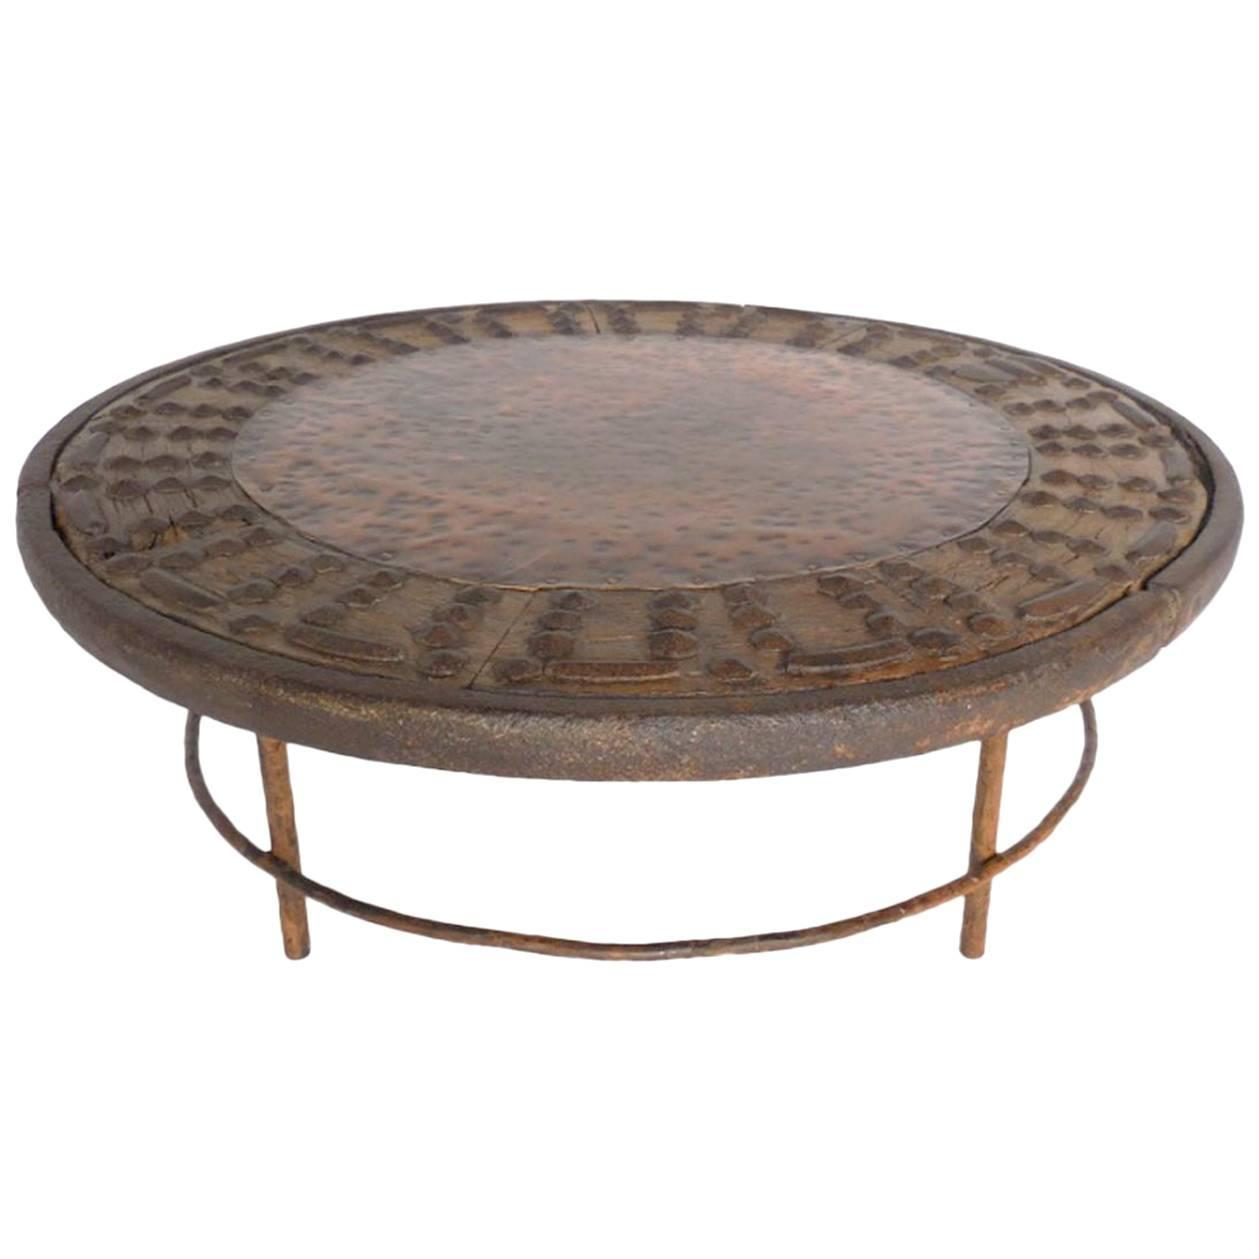 Rustic round copper cocktail table for sale at 1stdibs Rustic round coffee table